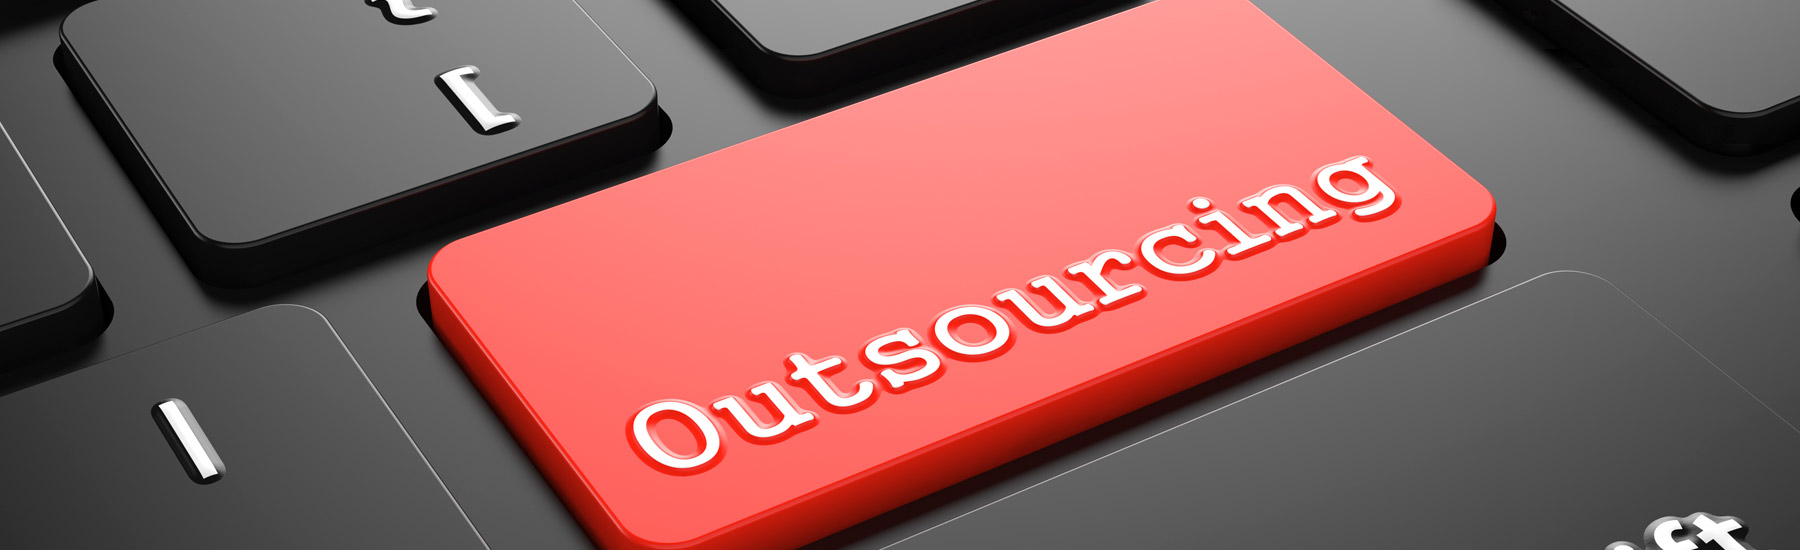 Is outsourcing your IT really cost-effective